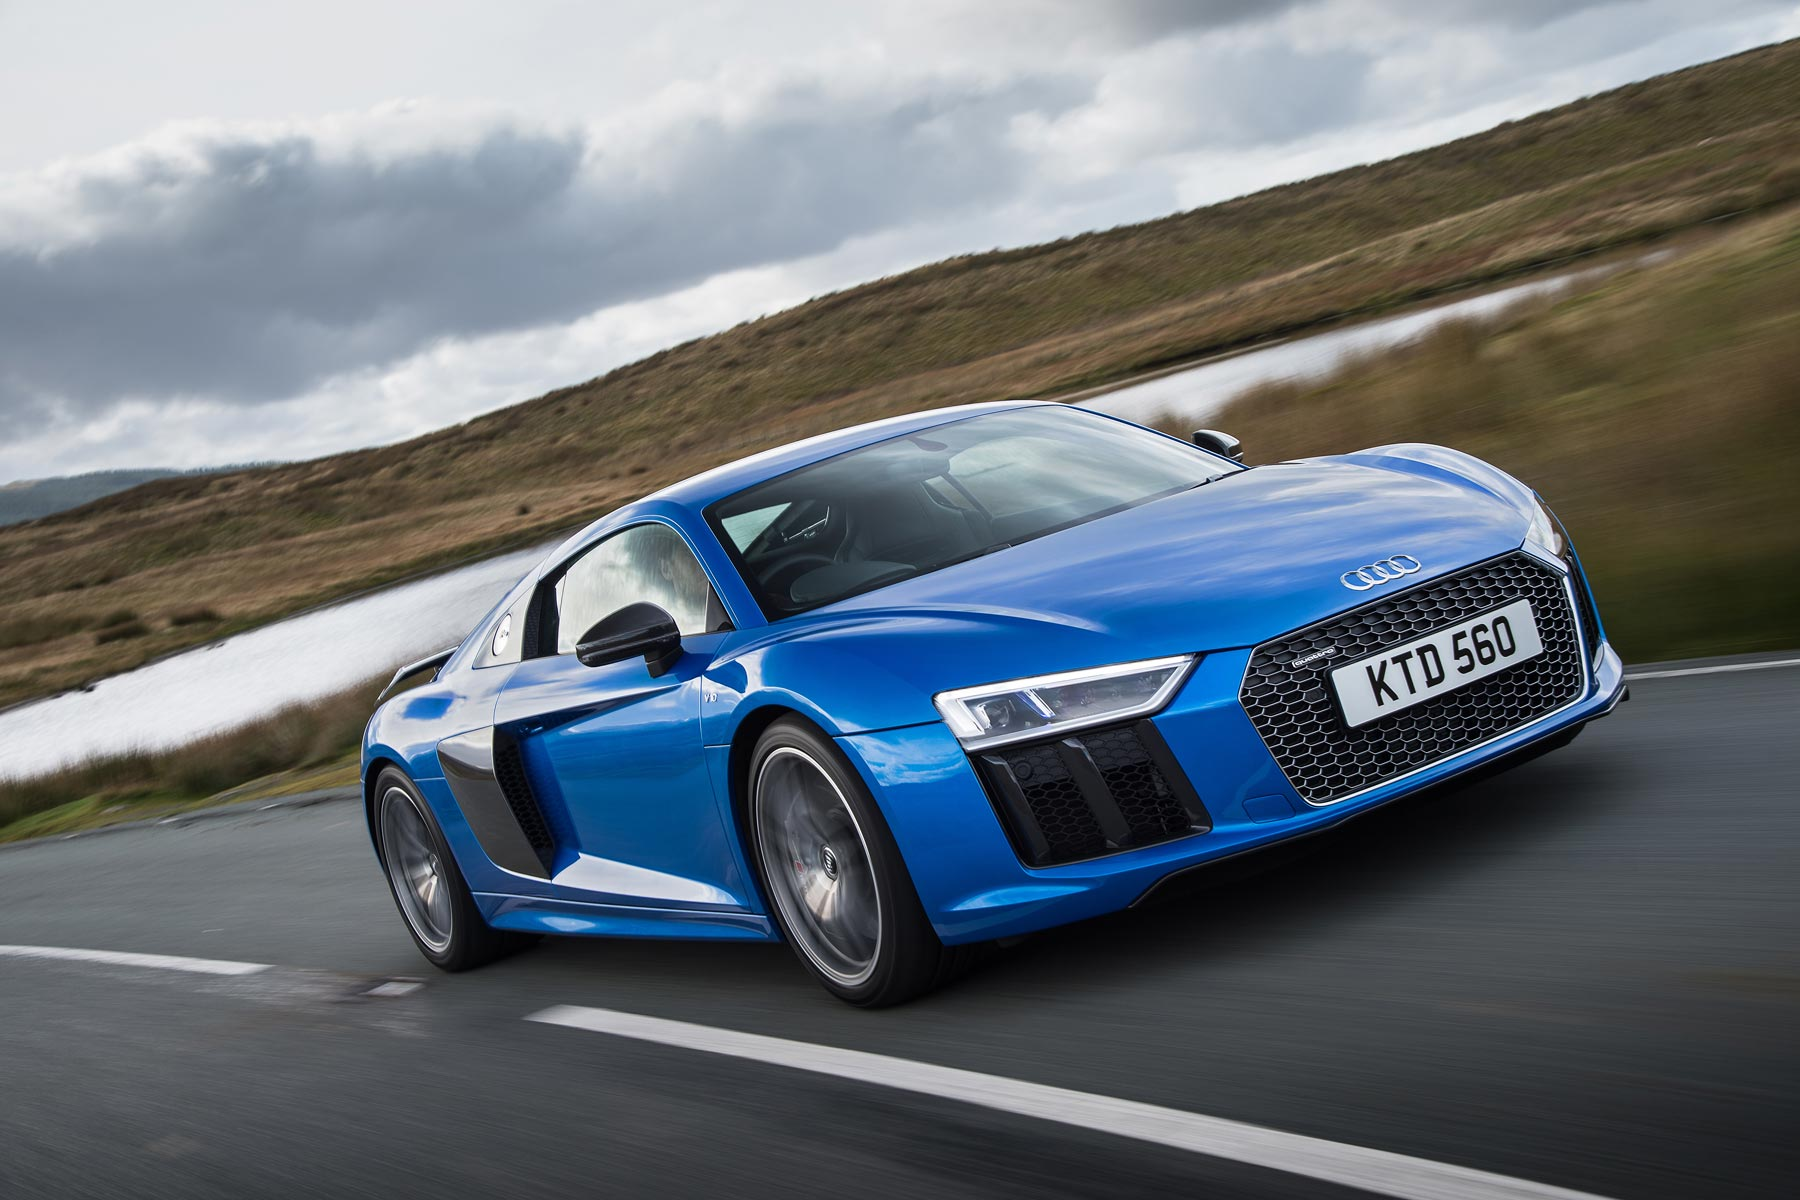 audi r8 v10 plus review 2015 first drive. Black Bedroom Furniture Sets. Home Design Ideas